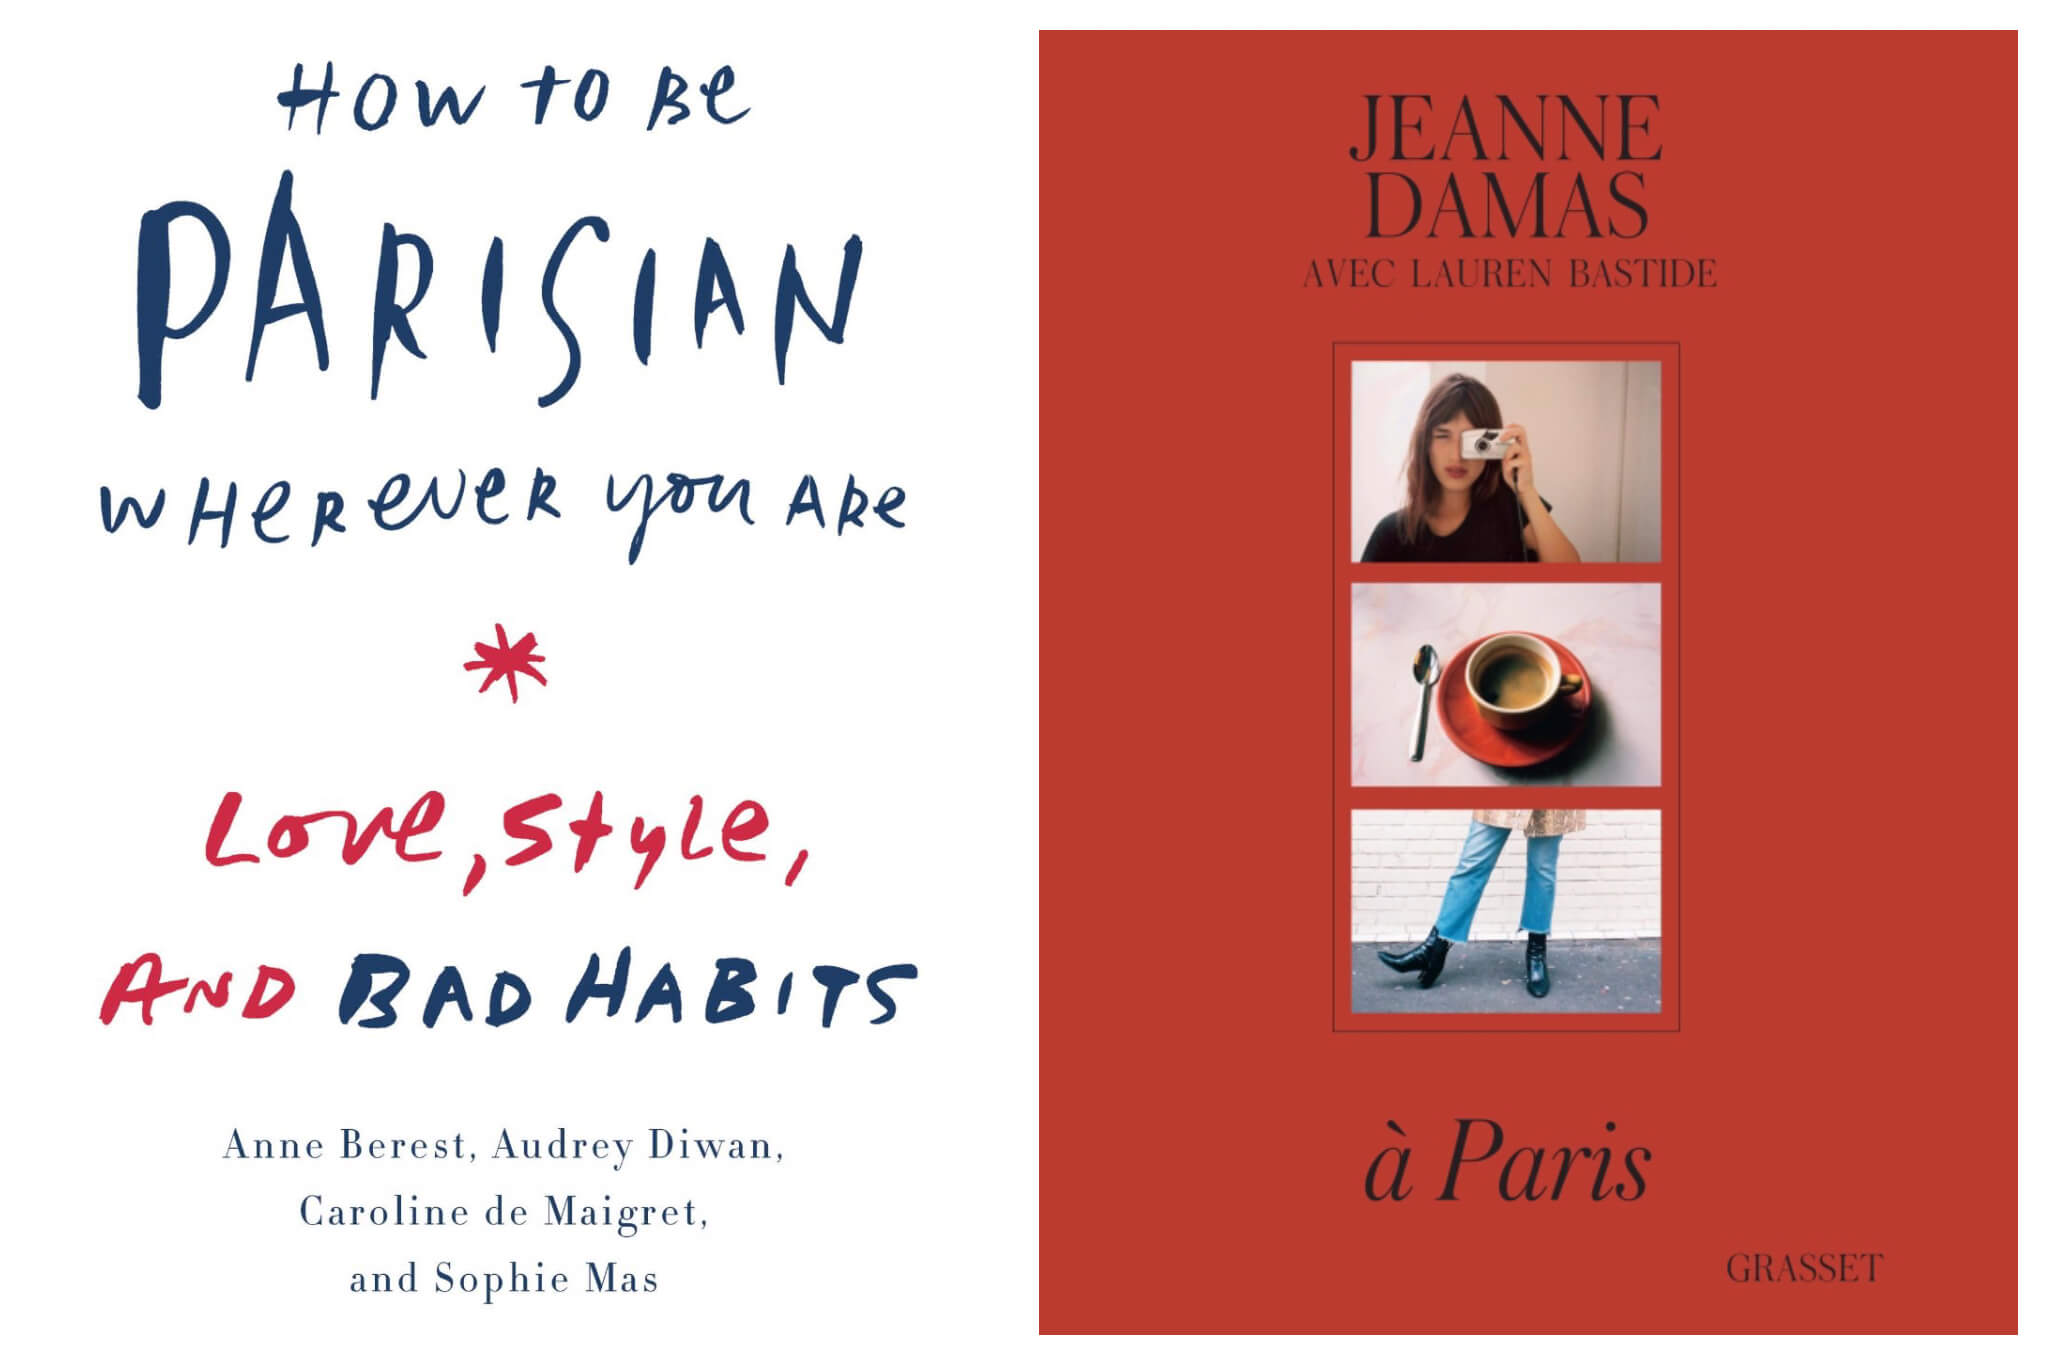 Left, the cover of the book 'How to be Parisian wherever you are'. Right, 'A Paris' book by Jeanne Damas, about Parisian style.